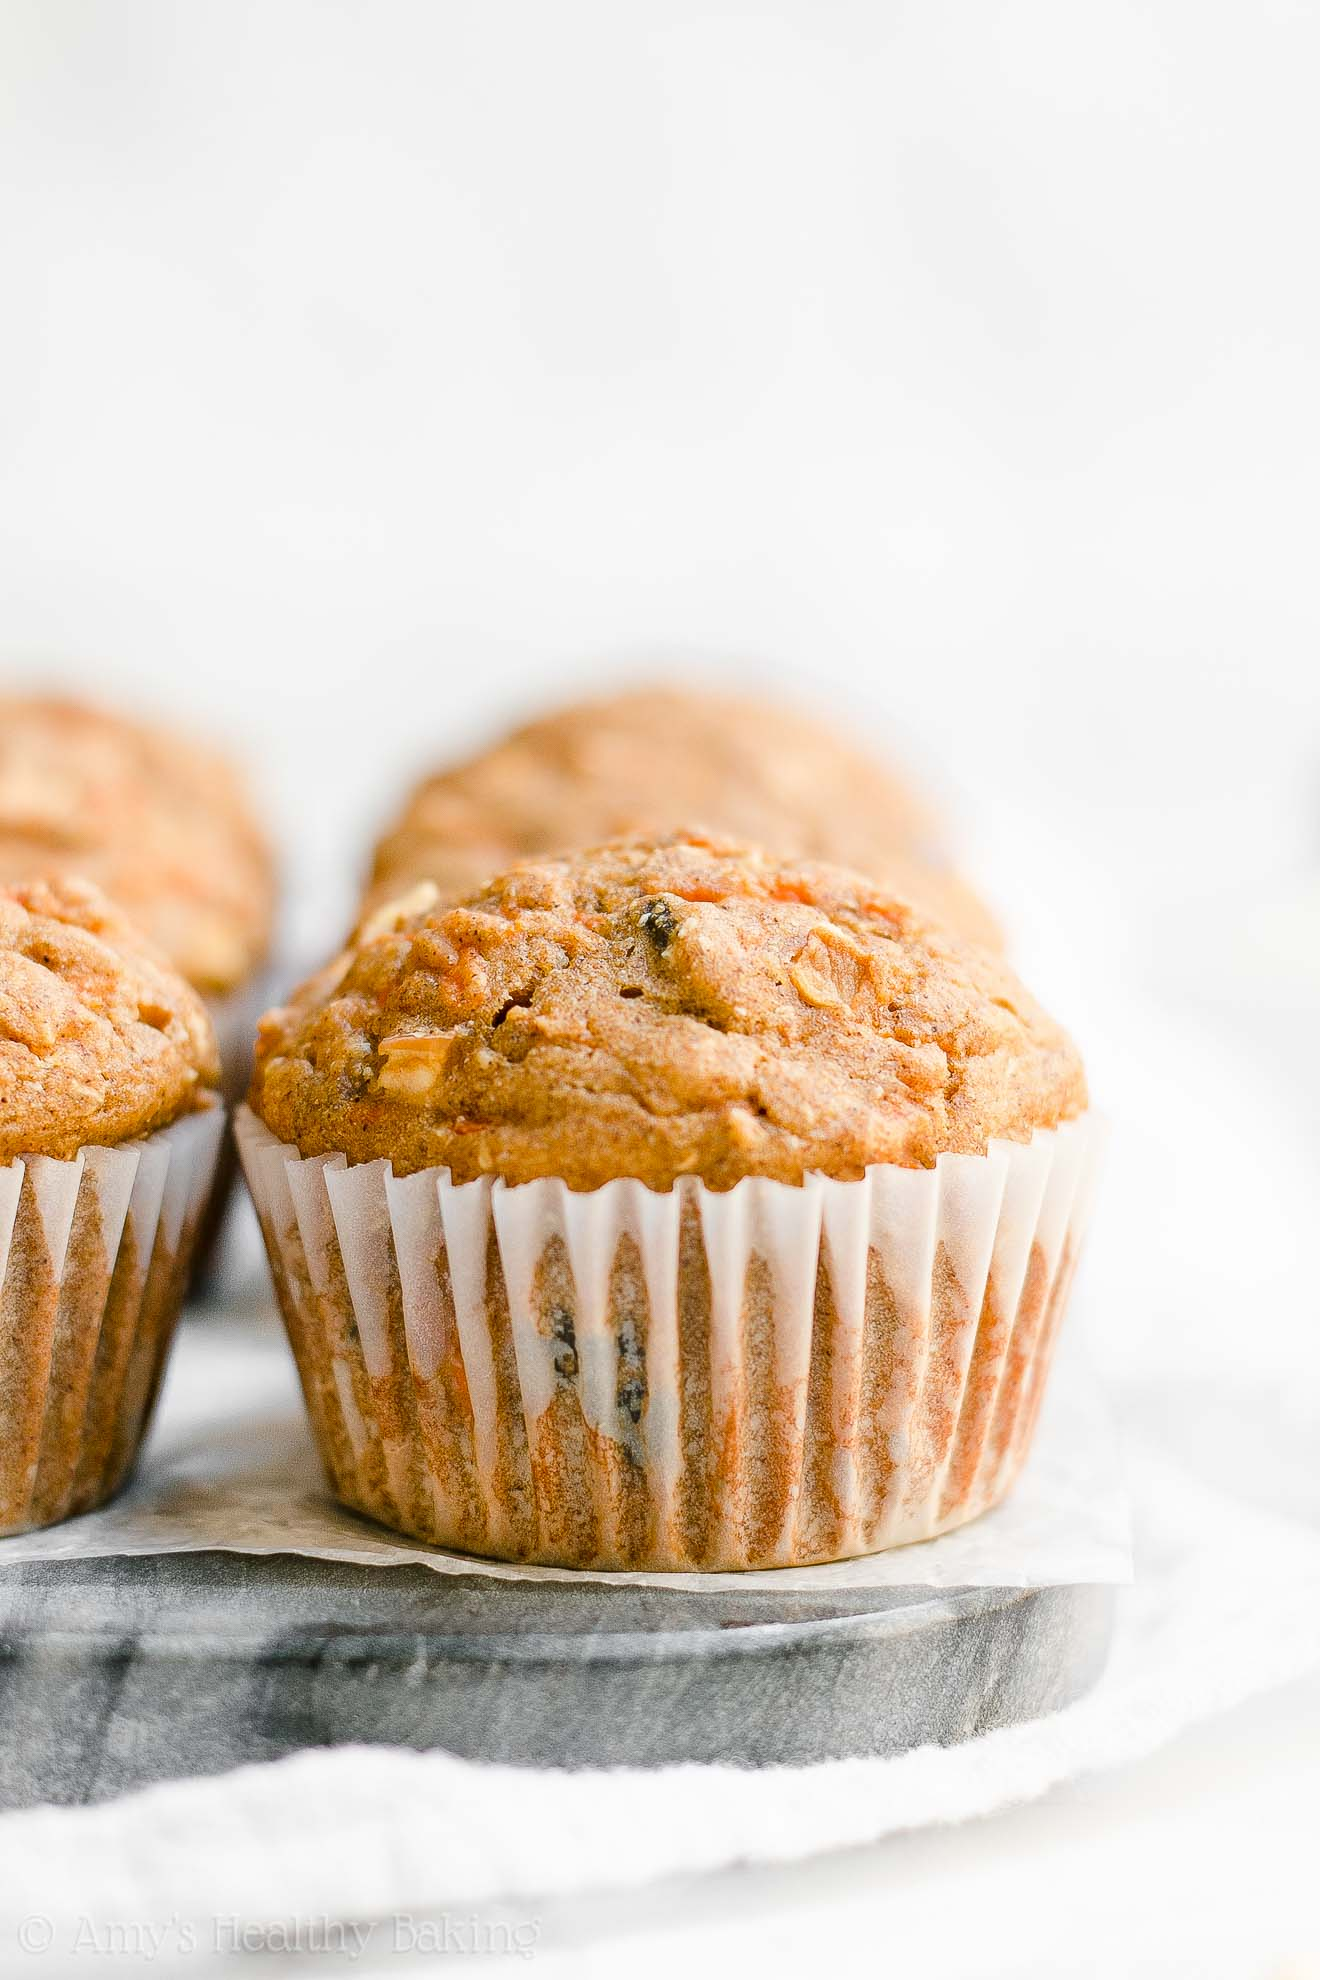 Best Ever Healthy Morning Glory Muffins with Weight Watchers Points